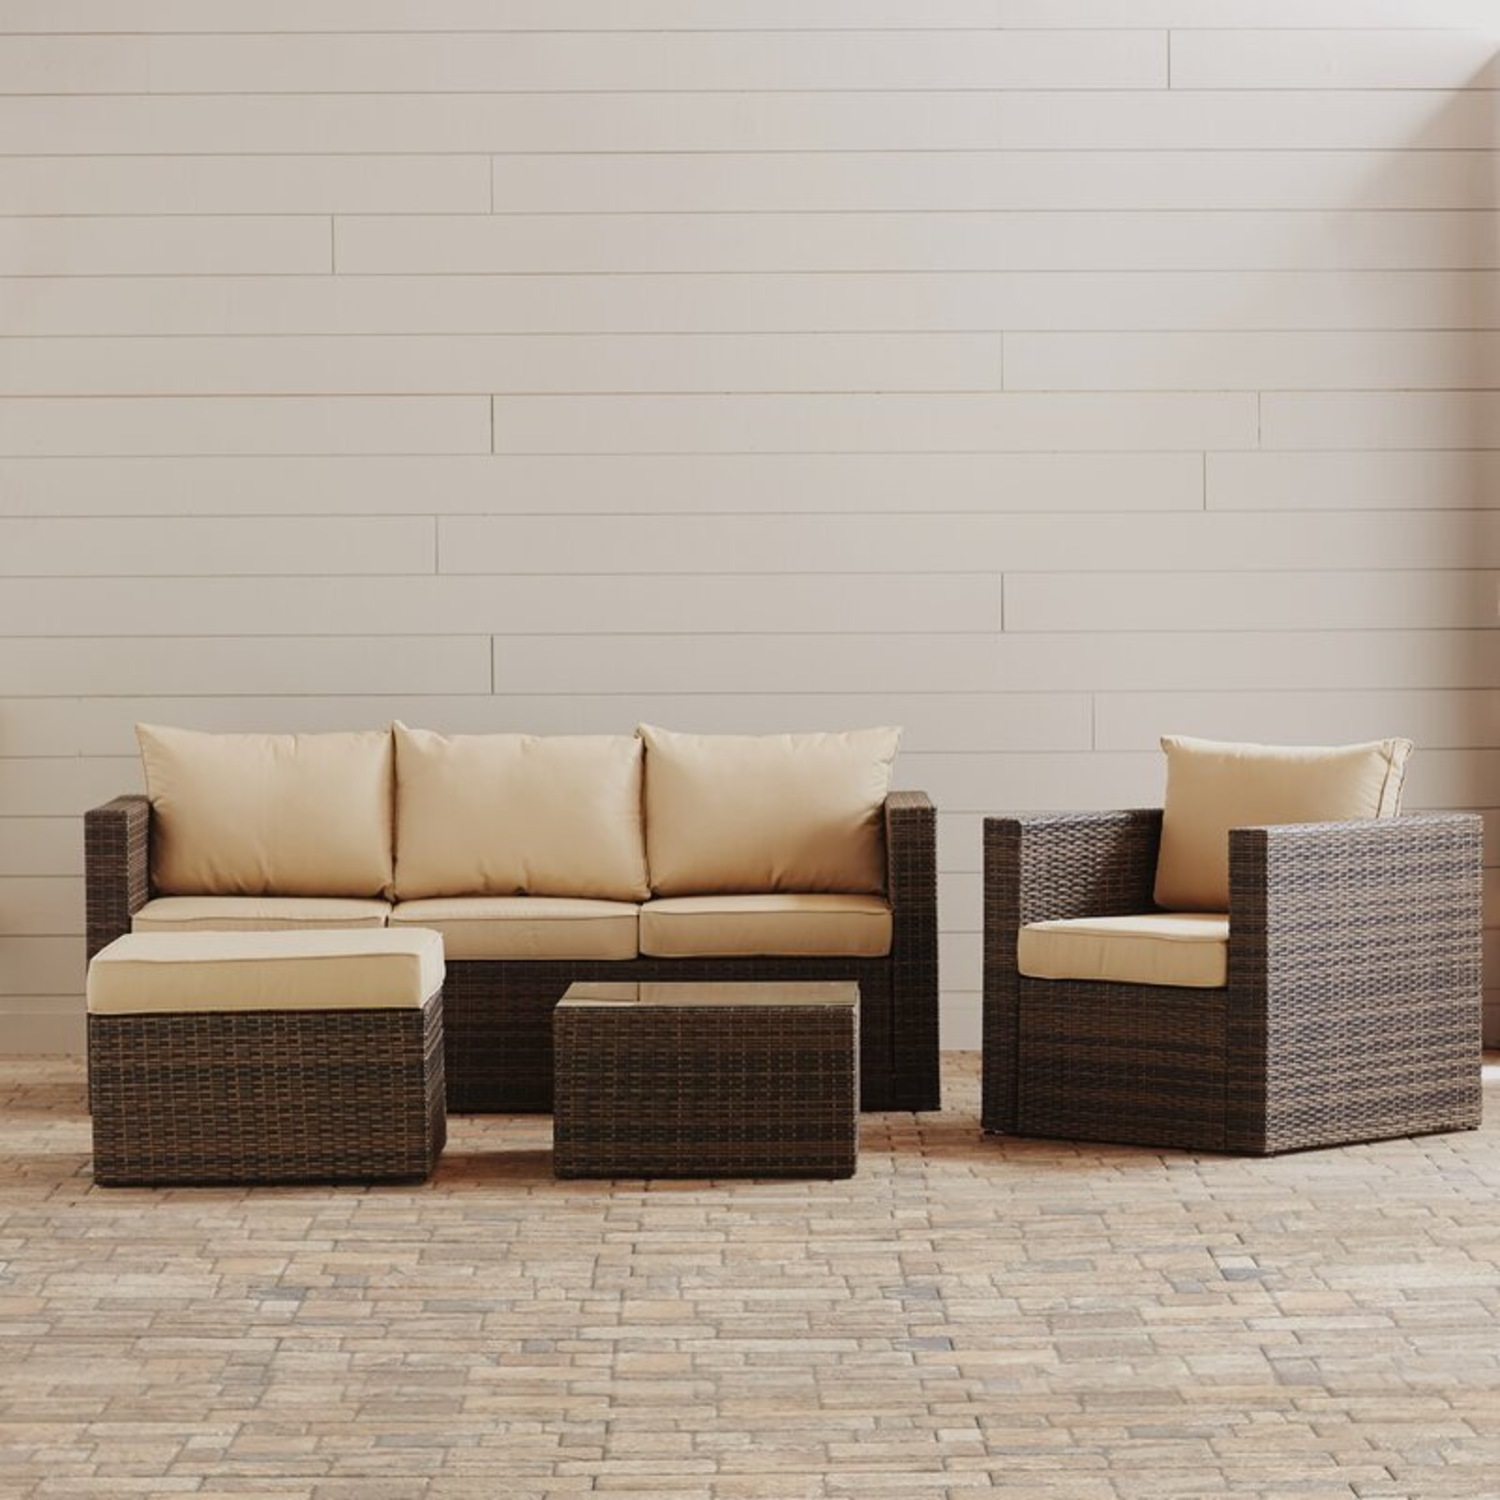 Mercury Row Outdoor Seating Set - image-1